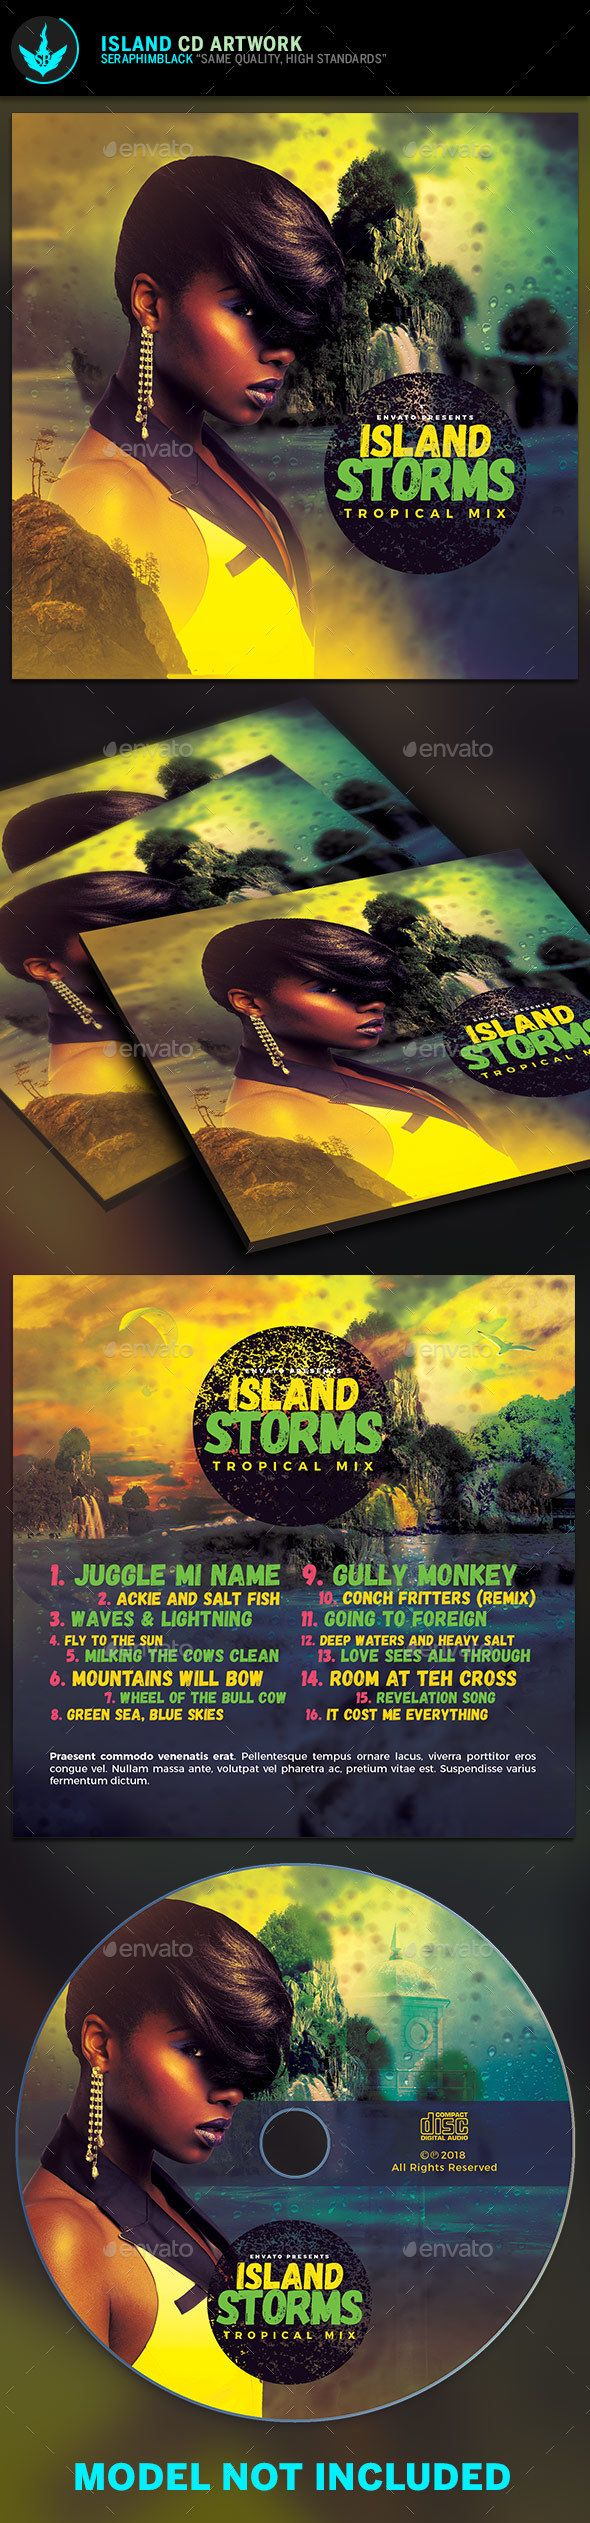 Island CD Artwork Template - #CD & #DVD Artwork Print #Templates Download here: https://graphicriver.net/item/island-cd-artwork-template/19432919?ref=alena994